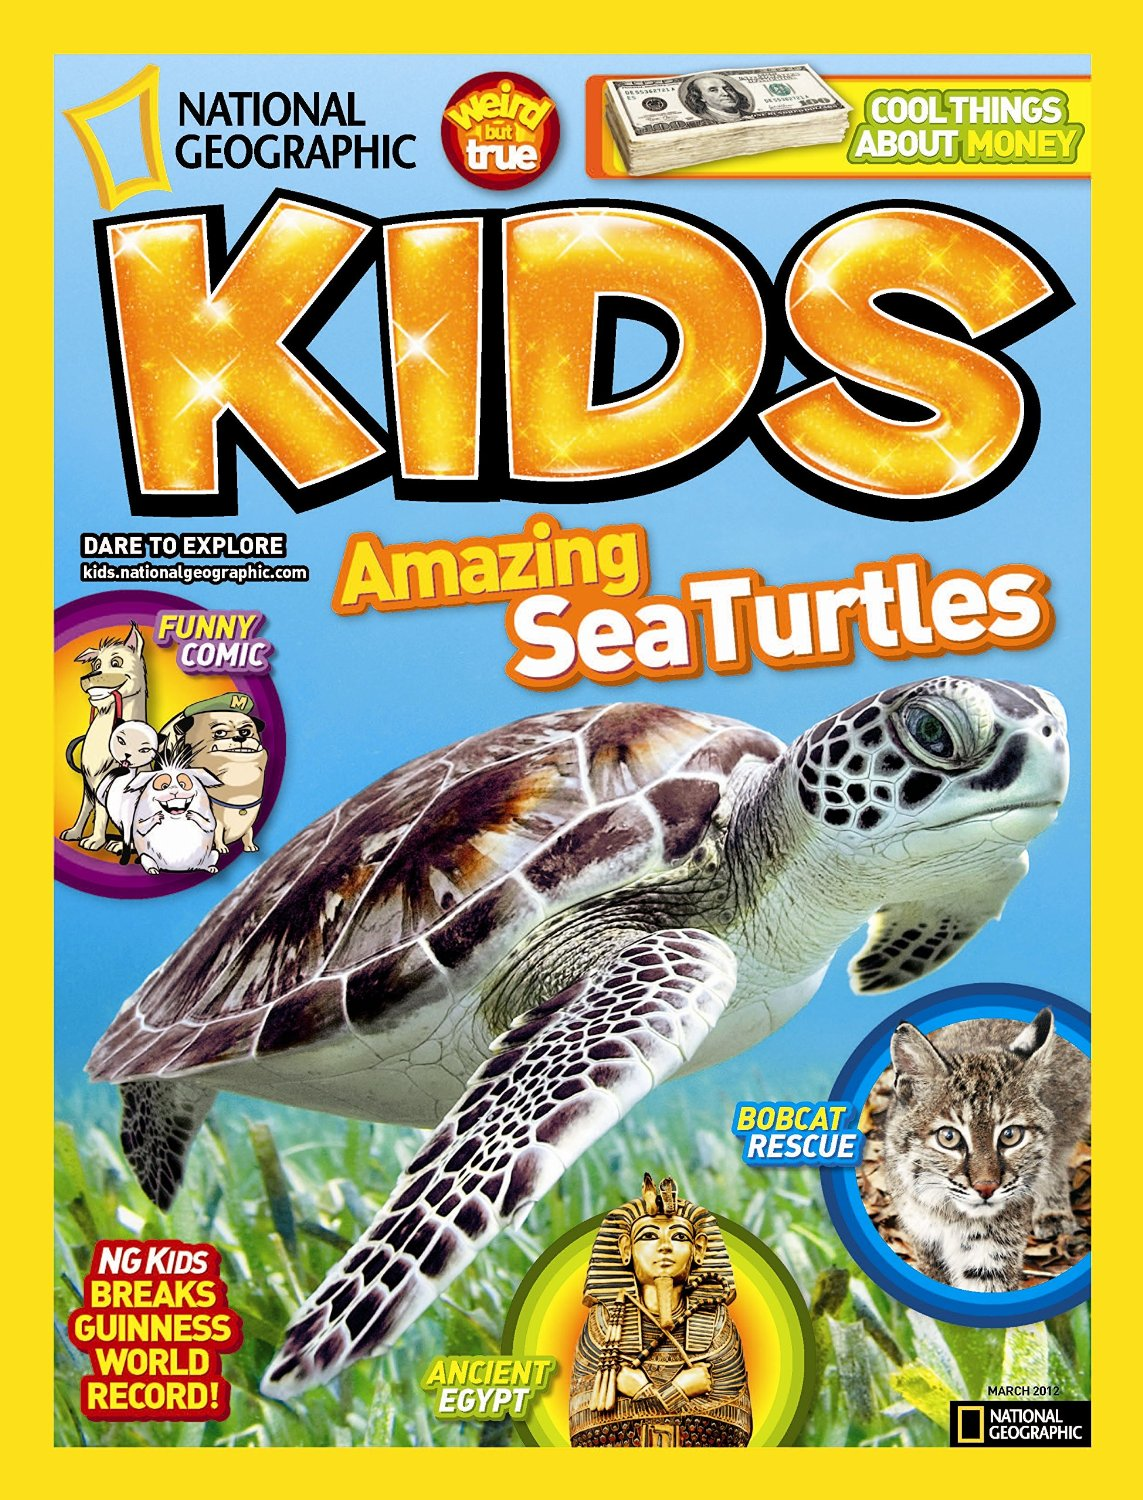 National Geographic Kids Magazine - DiscountMags.com